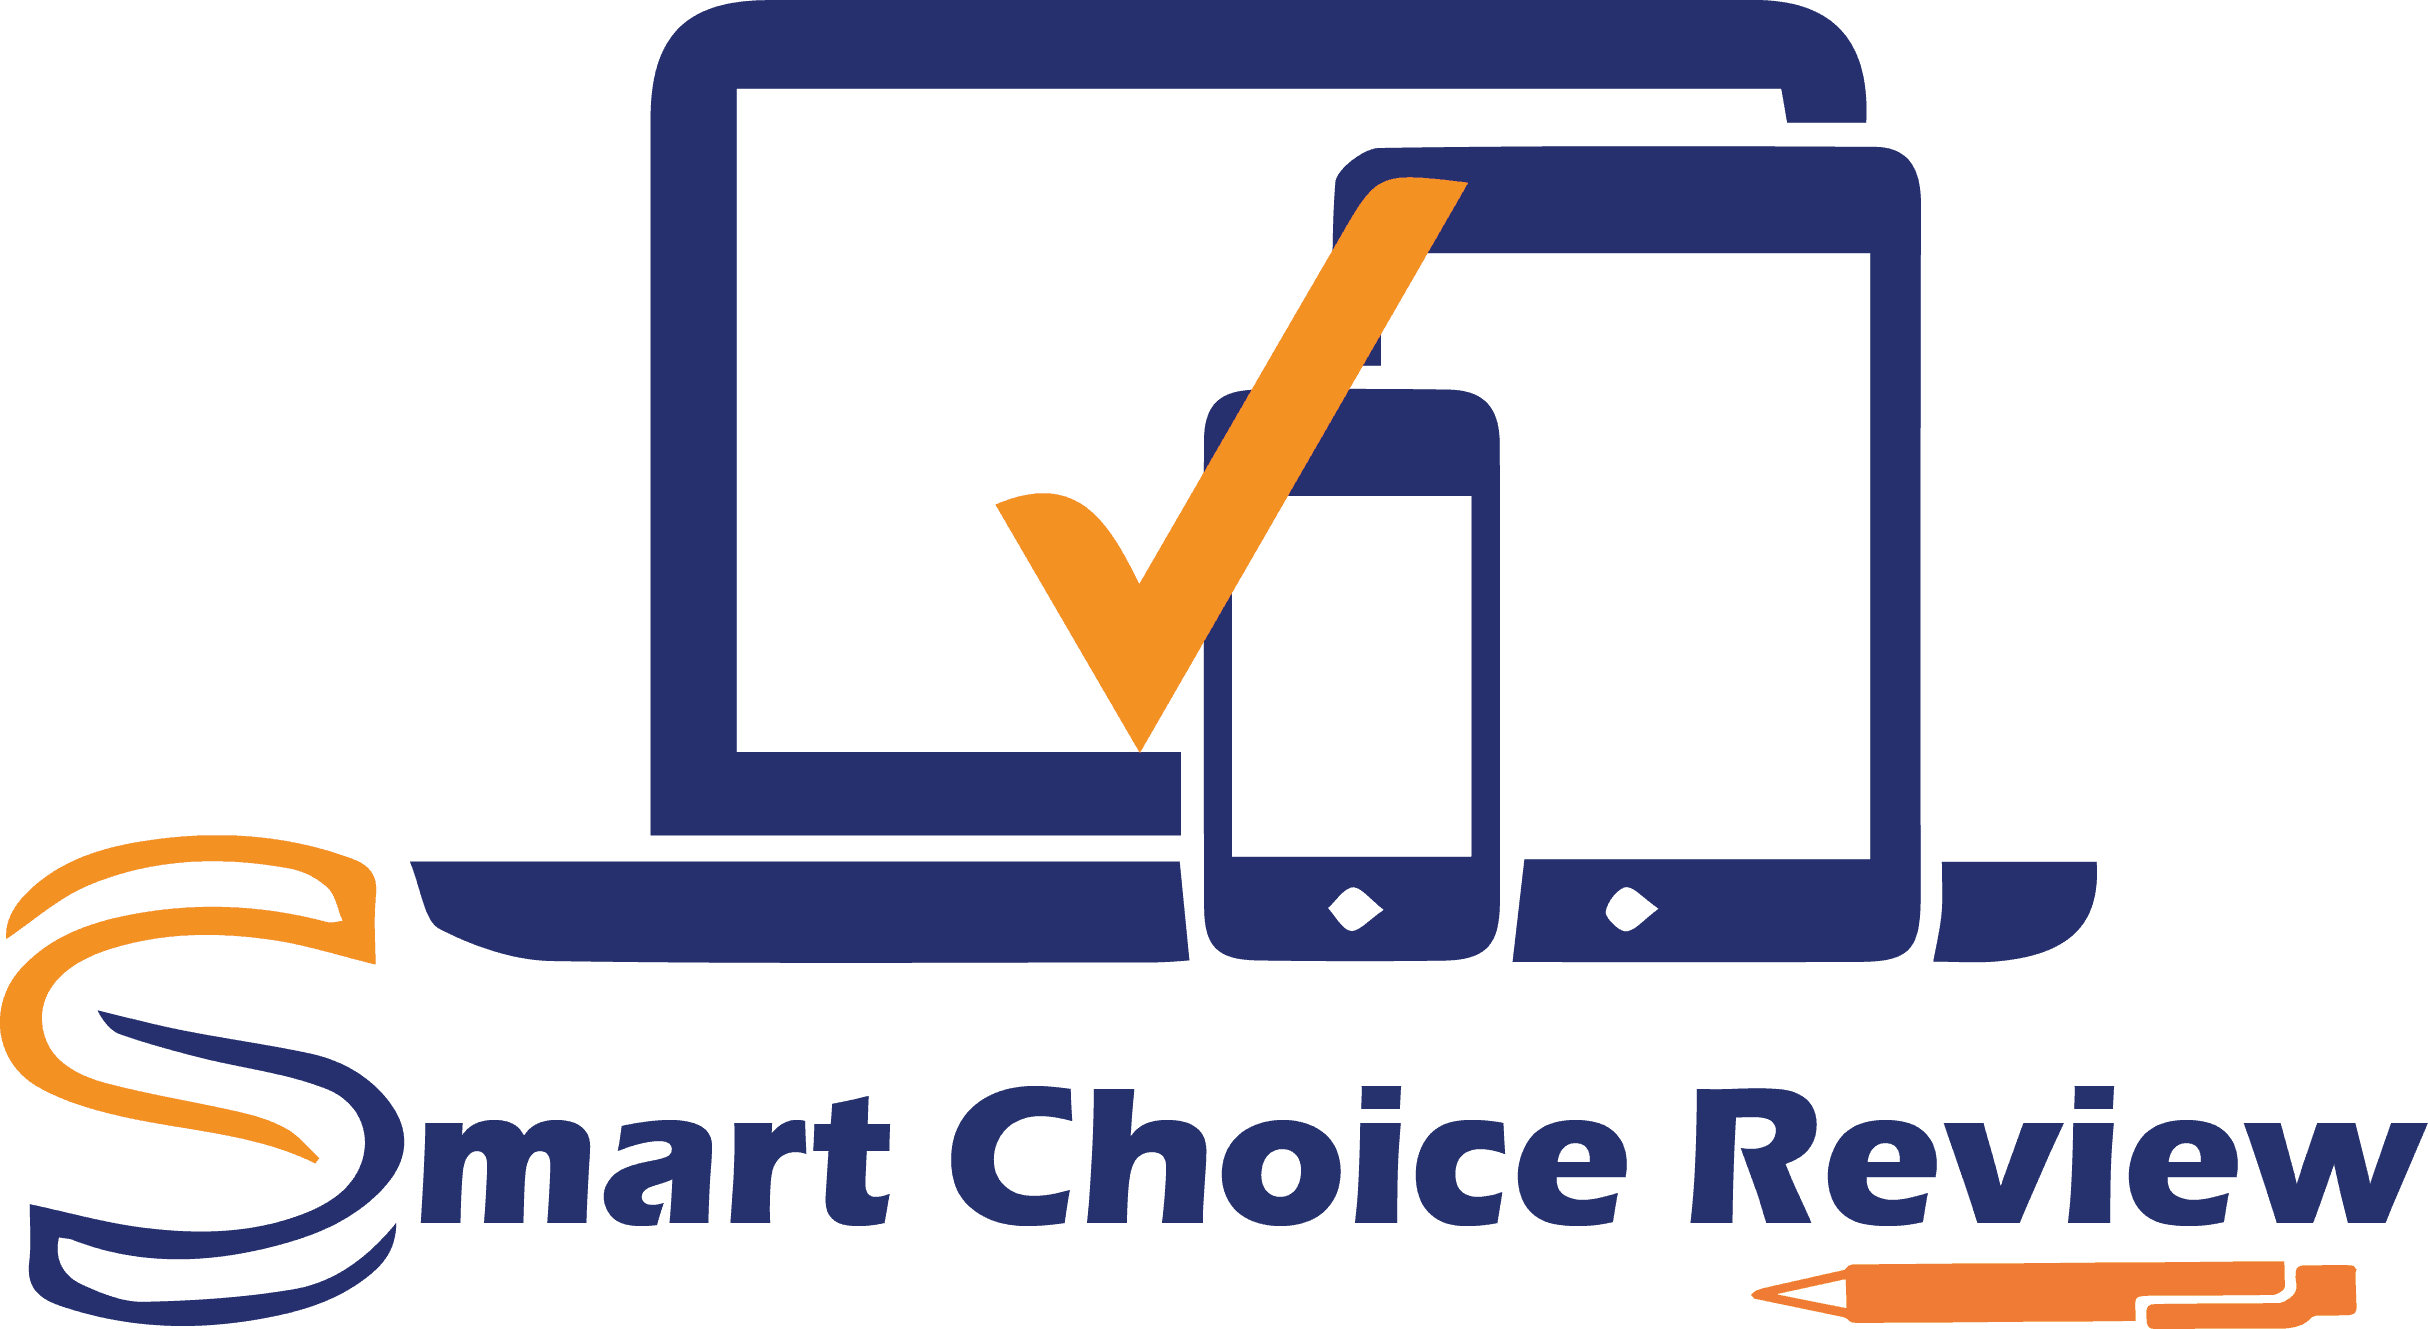 Smart Choice Review